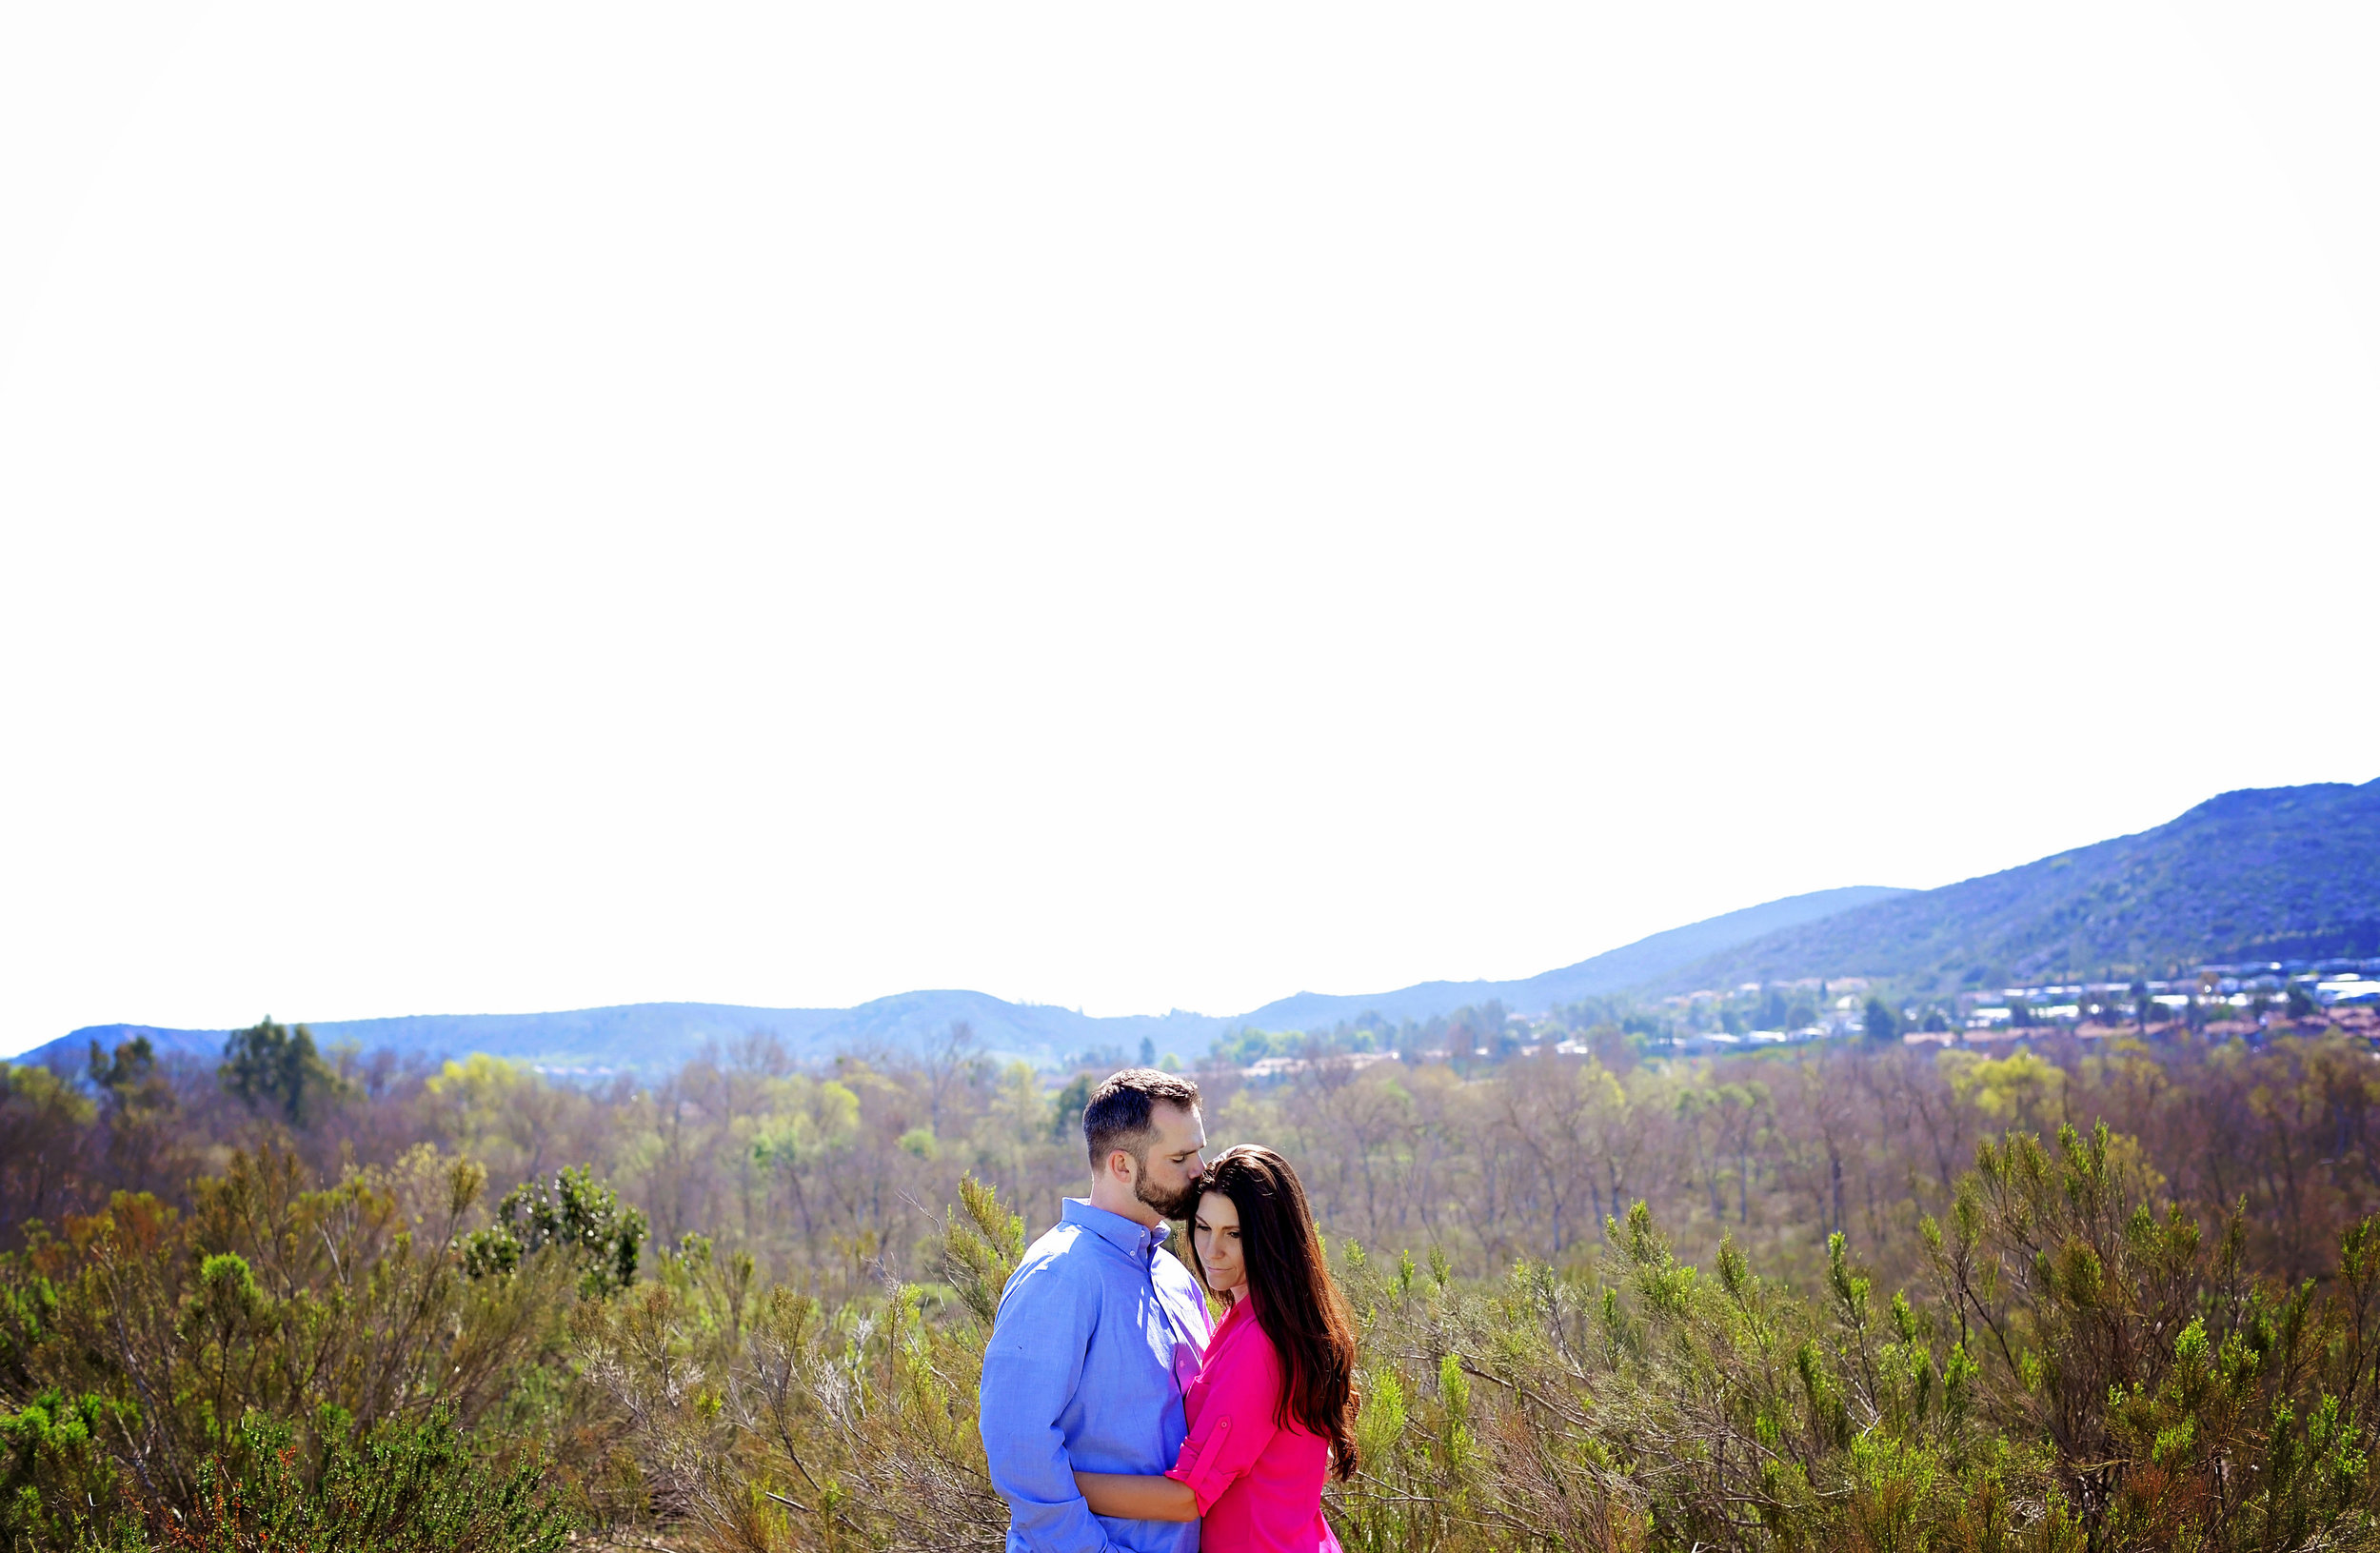 Jennie Bryan Engaged Centennial Park Mission Trails-The Happy Couple-0067.jpg